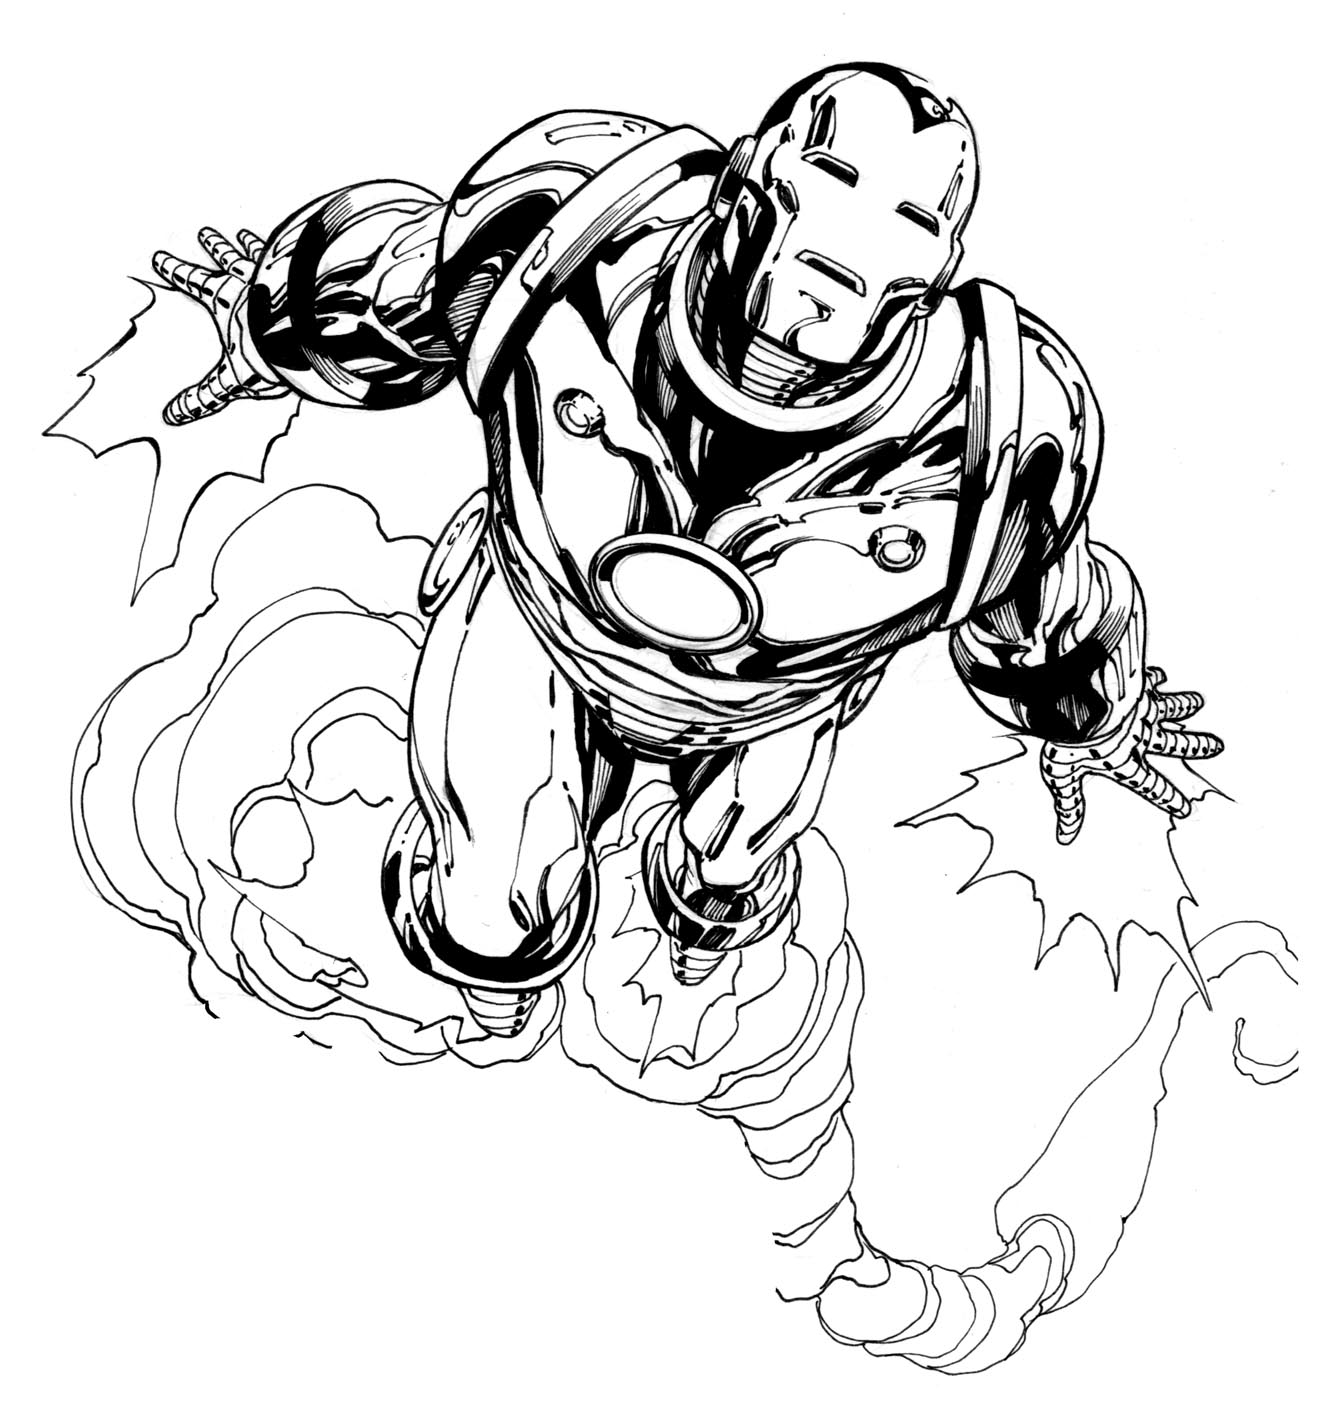 coloring iron man free printable iron man coloring pages for kids best man iron coloring